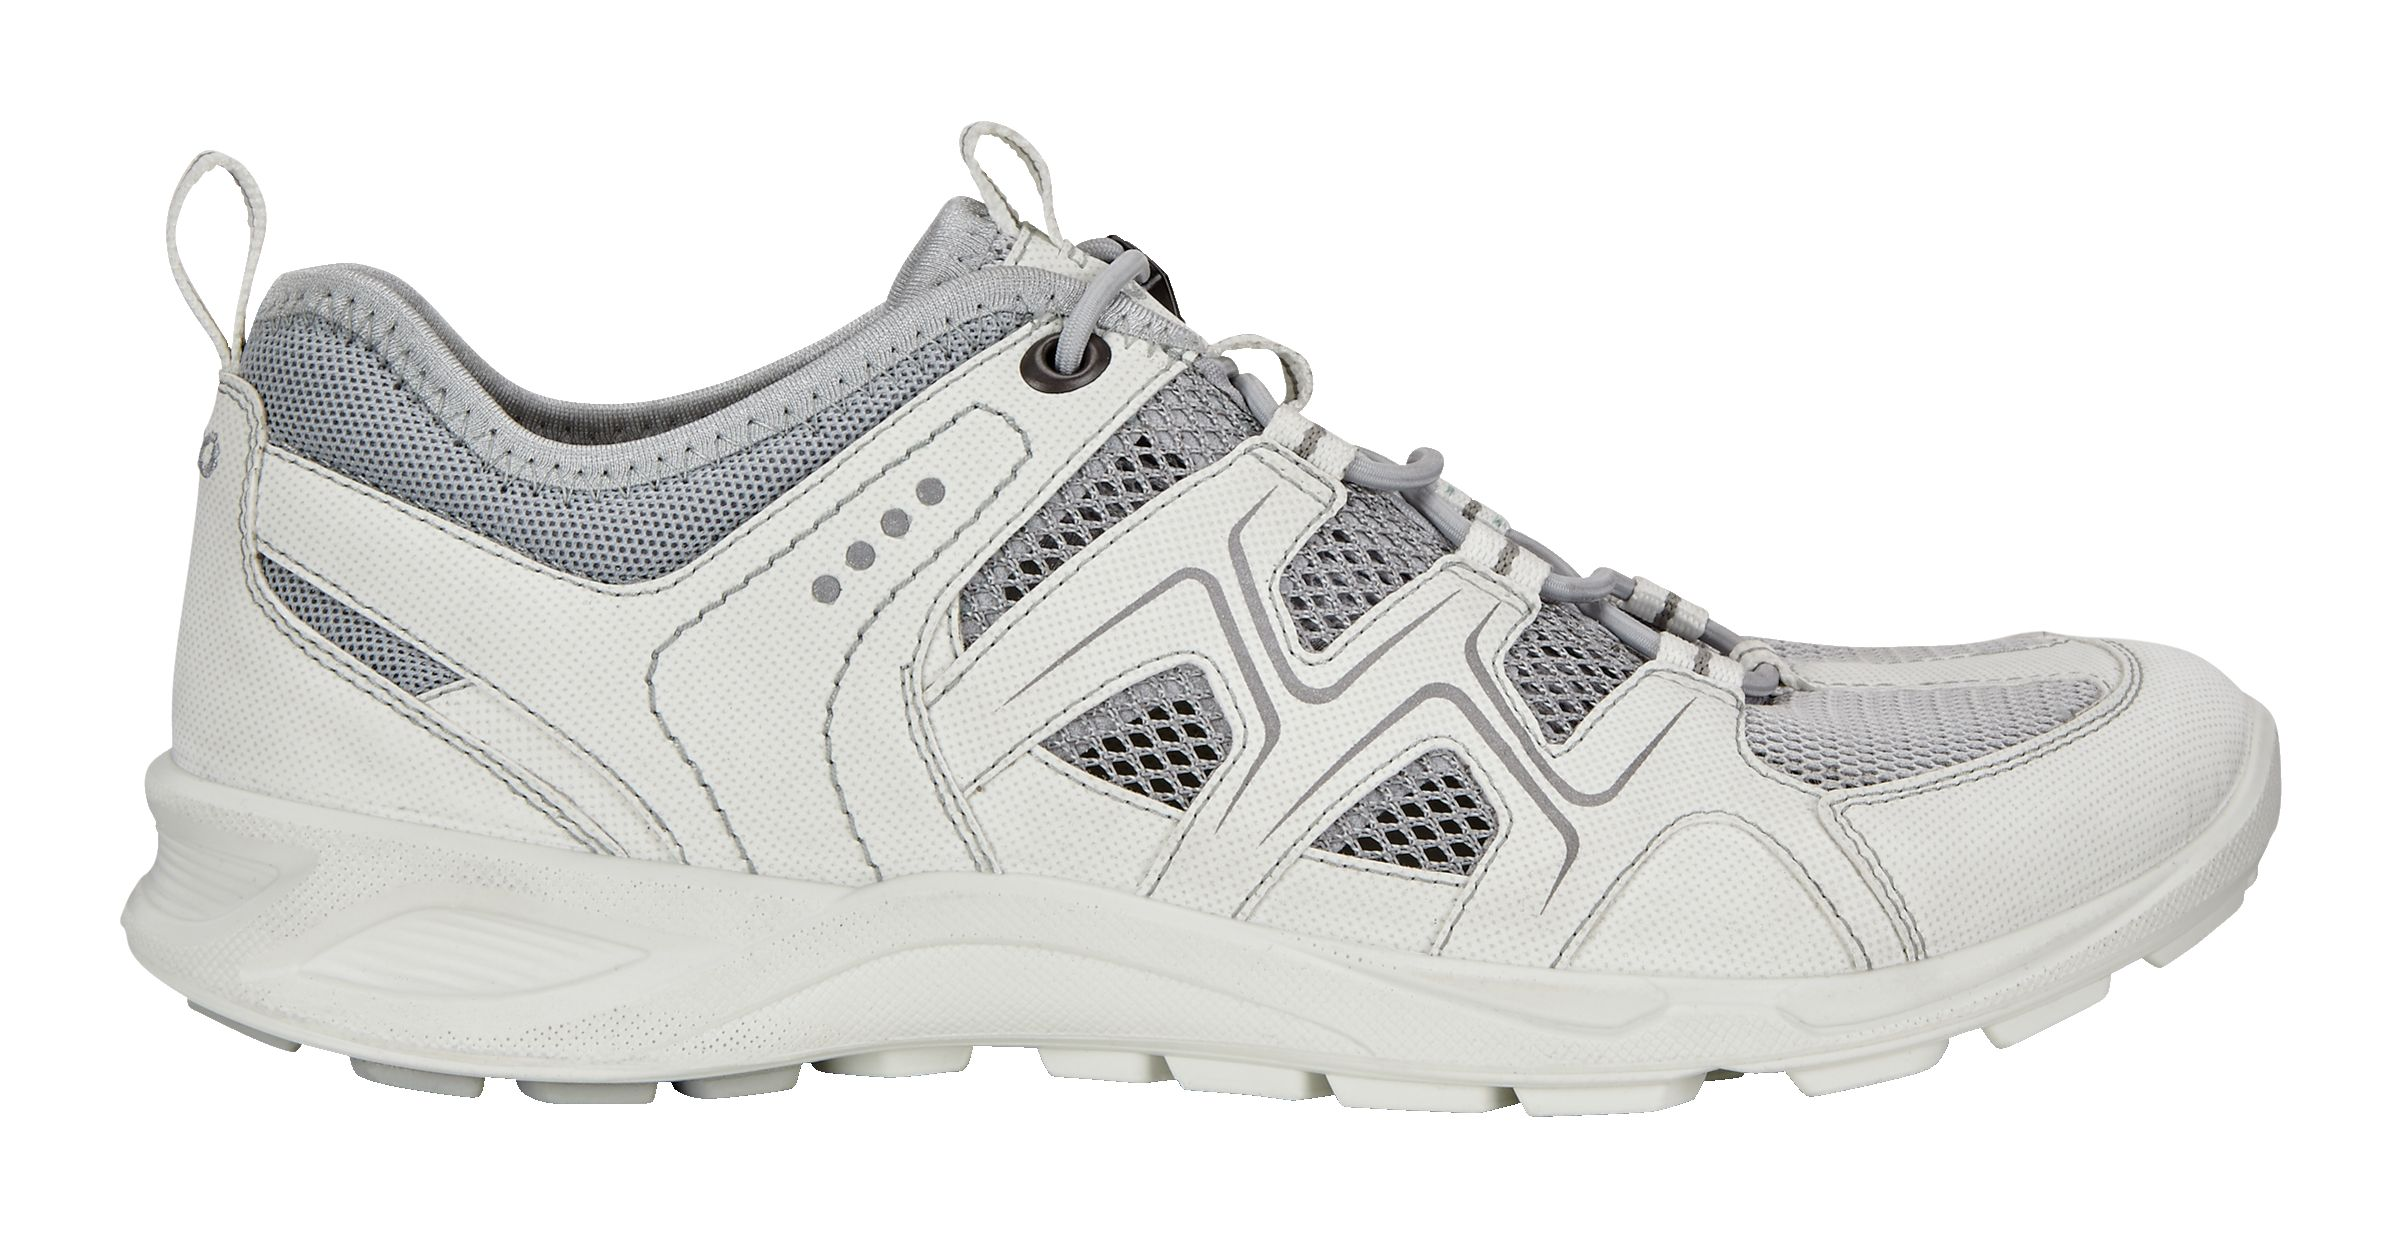 Ecco Terracruise shadow/white